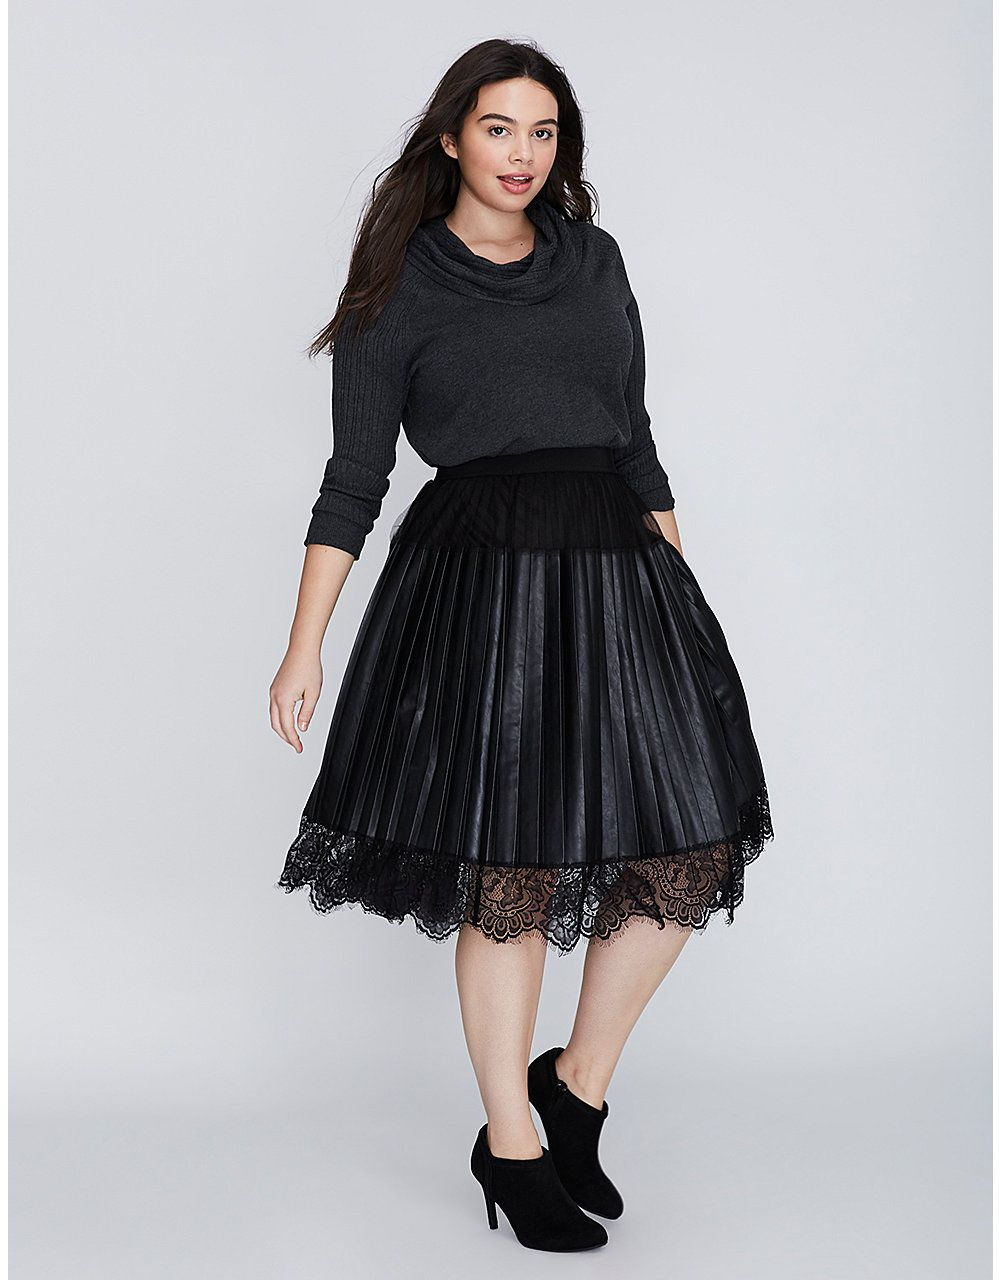 930e441e562 Pleated Faux Leather Skirt with Lace Trim